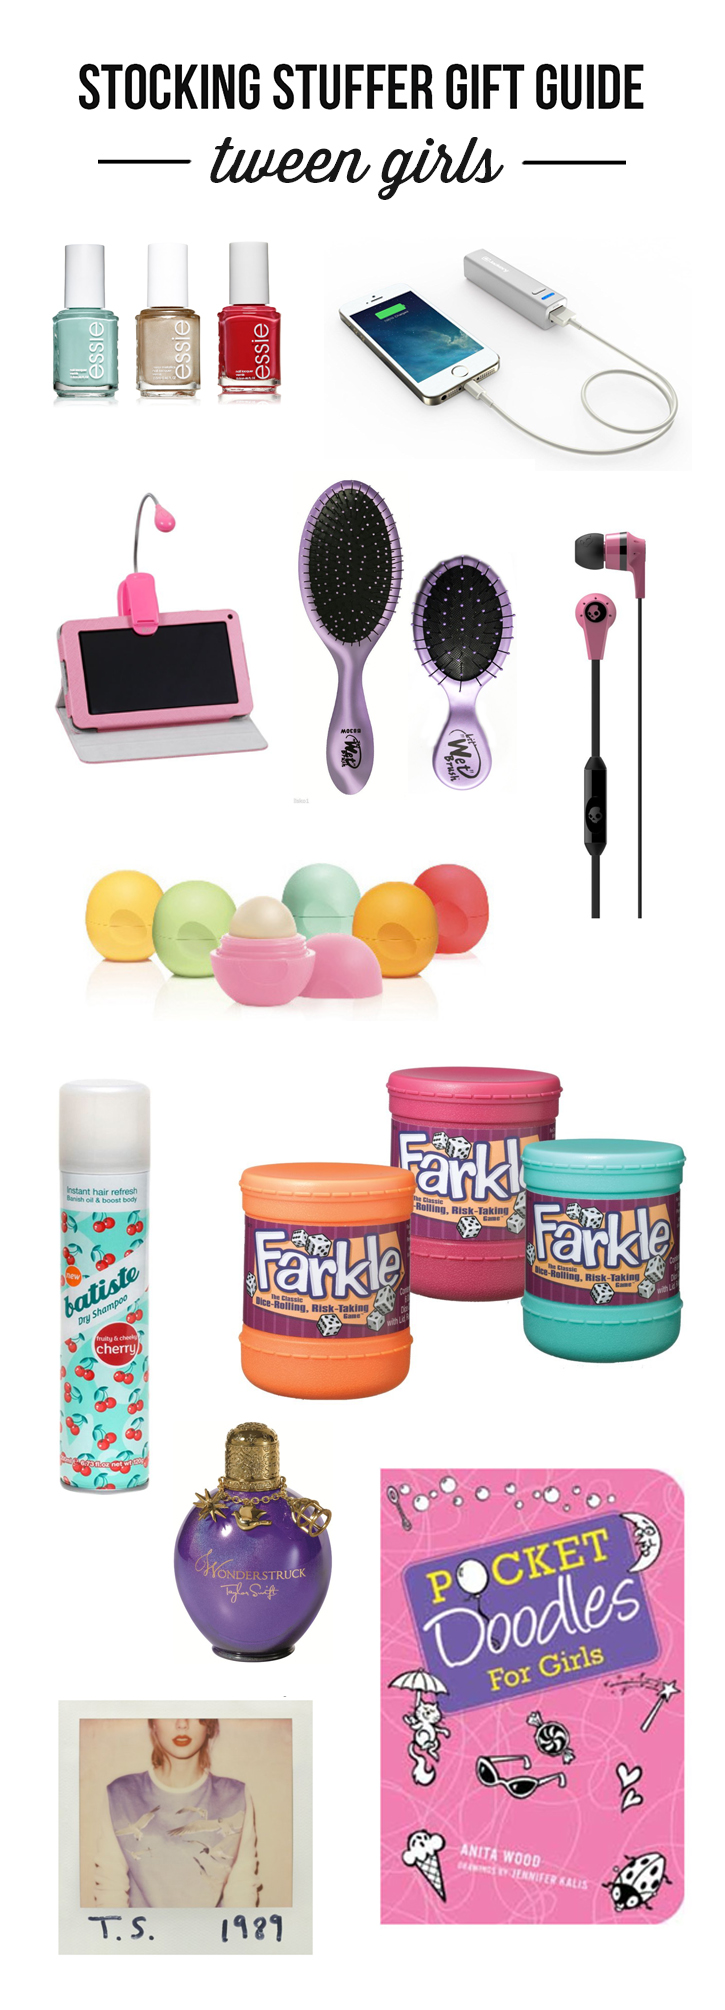 the ultimate stocking stuffer gift guide for tween girls lots of unique and memorable gift